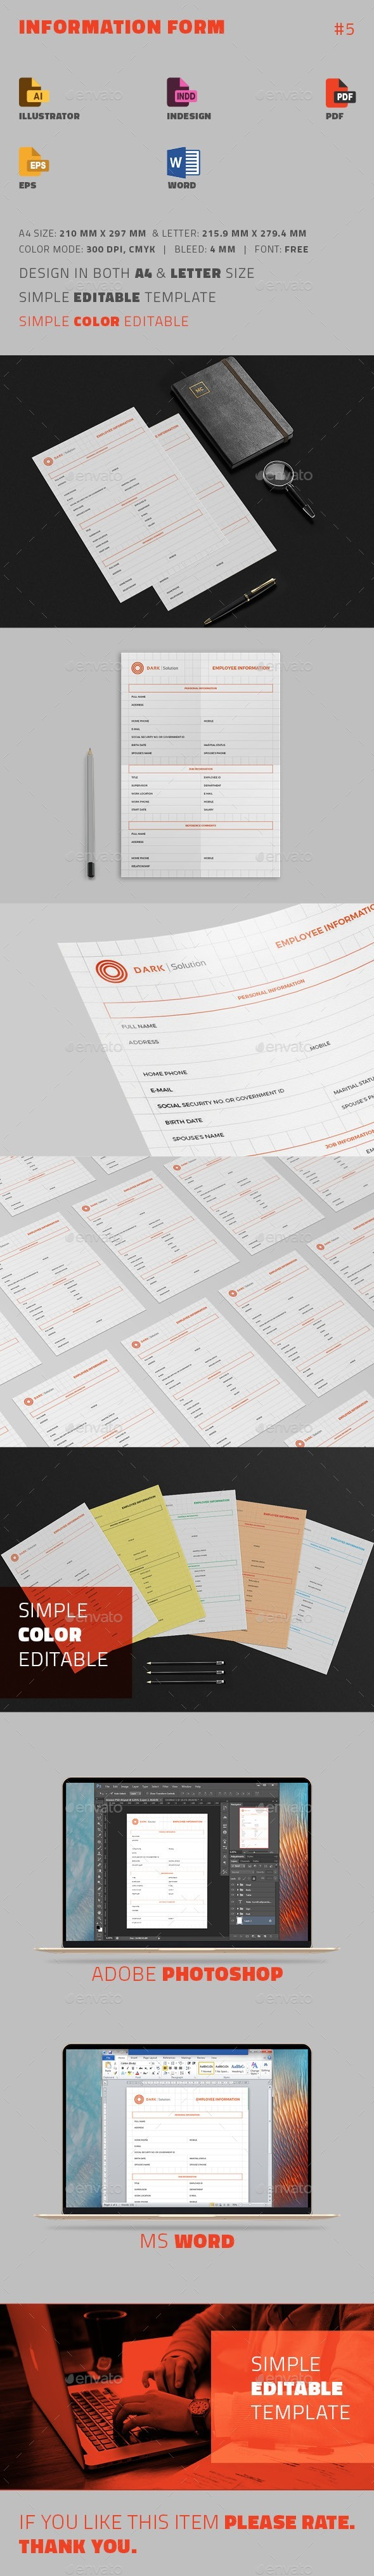 GraphicRiver Information Form 20859169